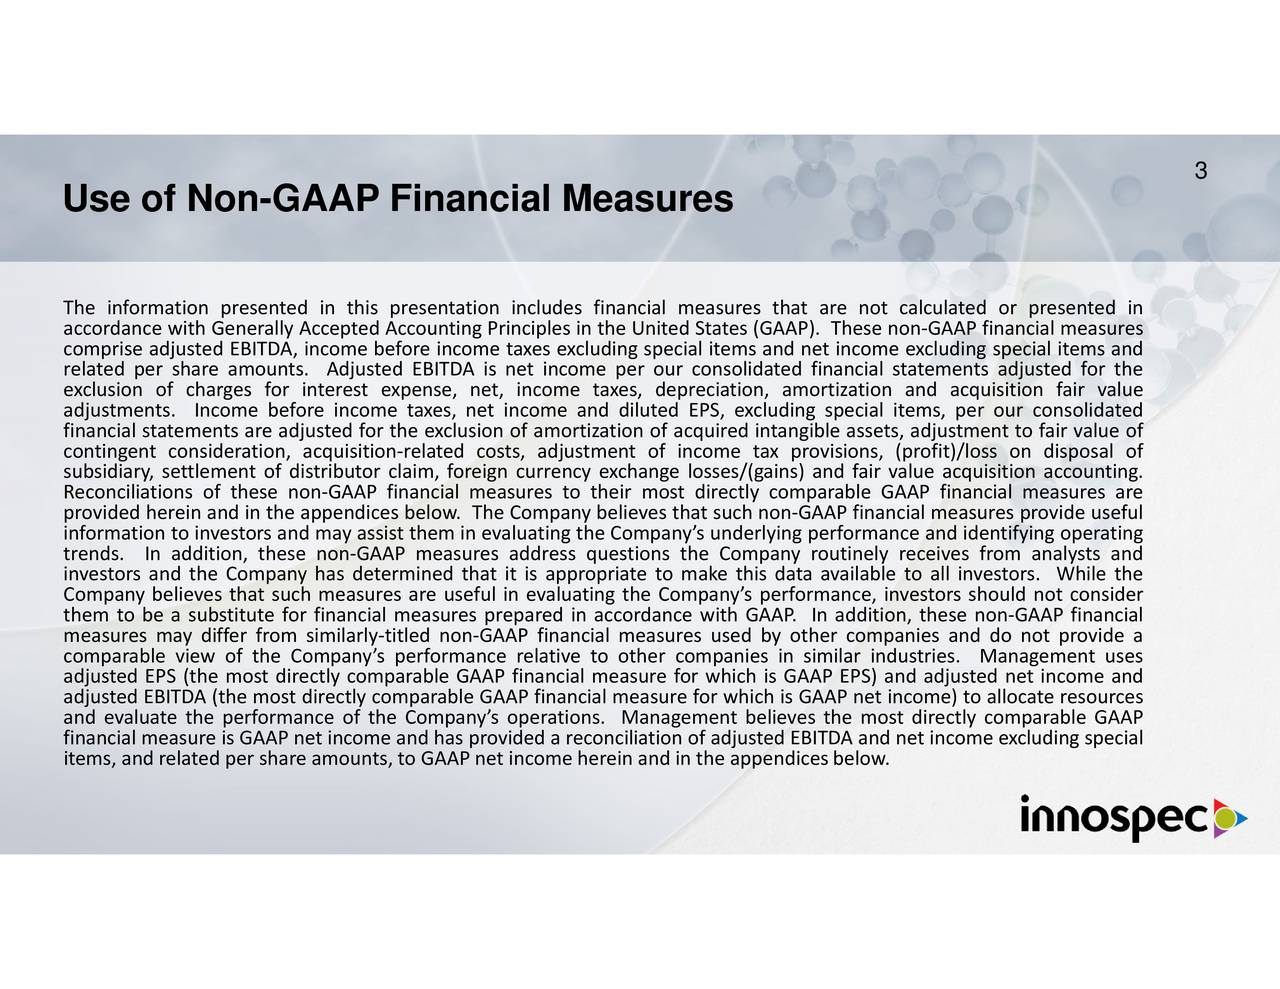 d s al res al of ting valuecounting. our consolidated financial statements adjusted for the uted EPS, excludions the Company routinely receives from analysts andement usesle GAAP s, depreciaeir most directly comparable GAAP financial measures arejusted net income anding speci nancding special items and net incomial measures used by other companies and do not provide ae resource in the United States (GAAP). These non-GAAP financial measunt to fairying opera jusency exchange losses/(gains) and fair value acquisition ac Use of Non-GAAP Financial MeasuresaarmosnsssbrnforjtteeqfiItox,-exa,siinomfs,maxd diltpanngtela,doanliacP